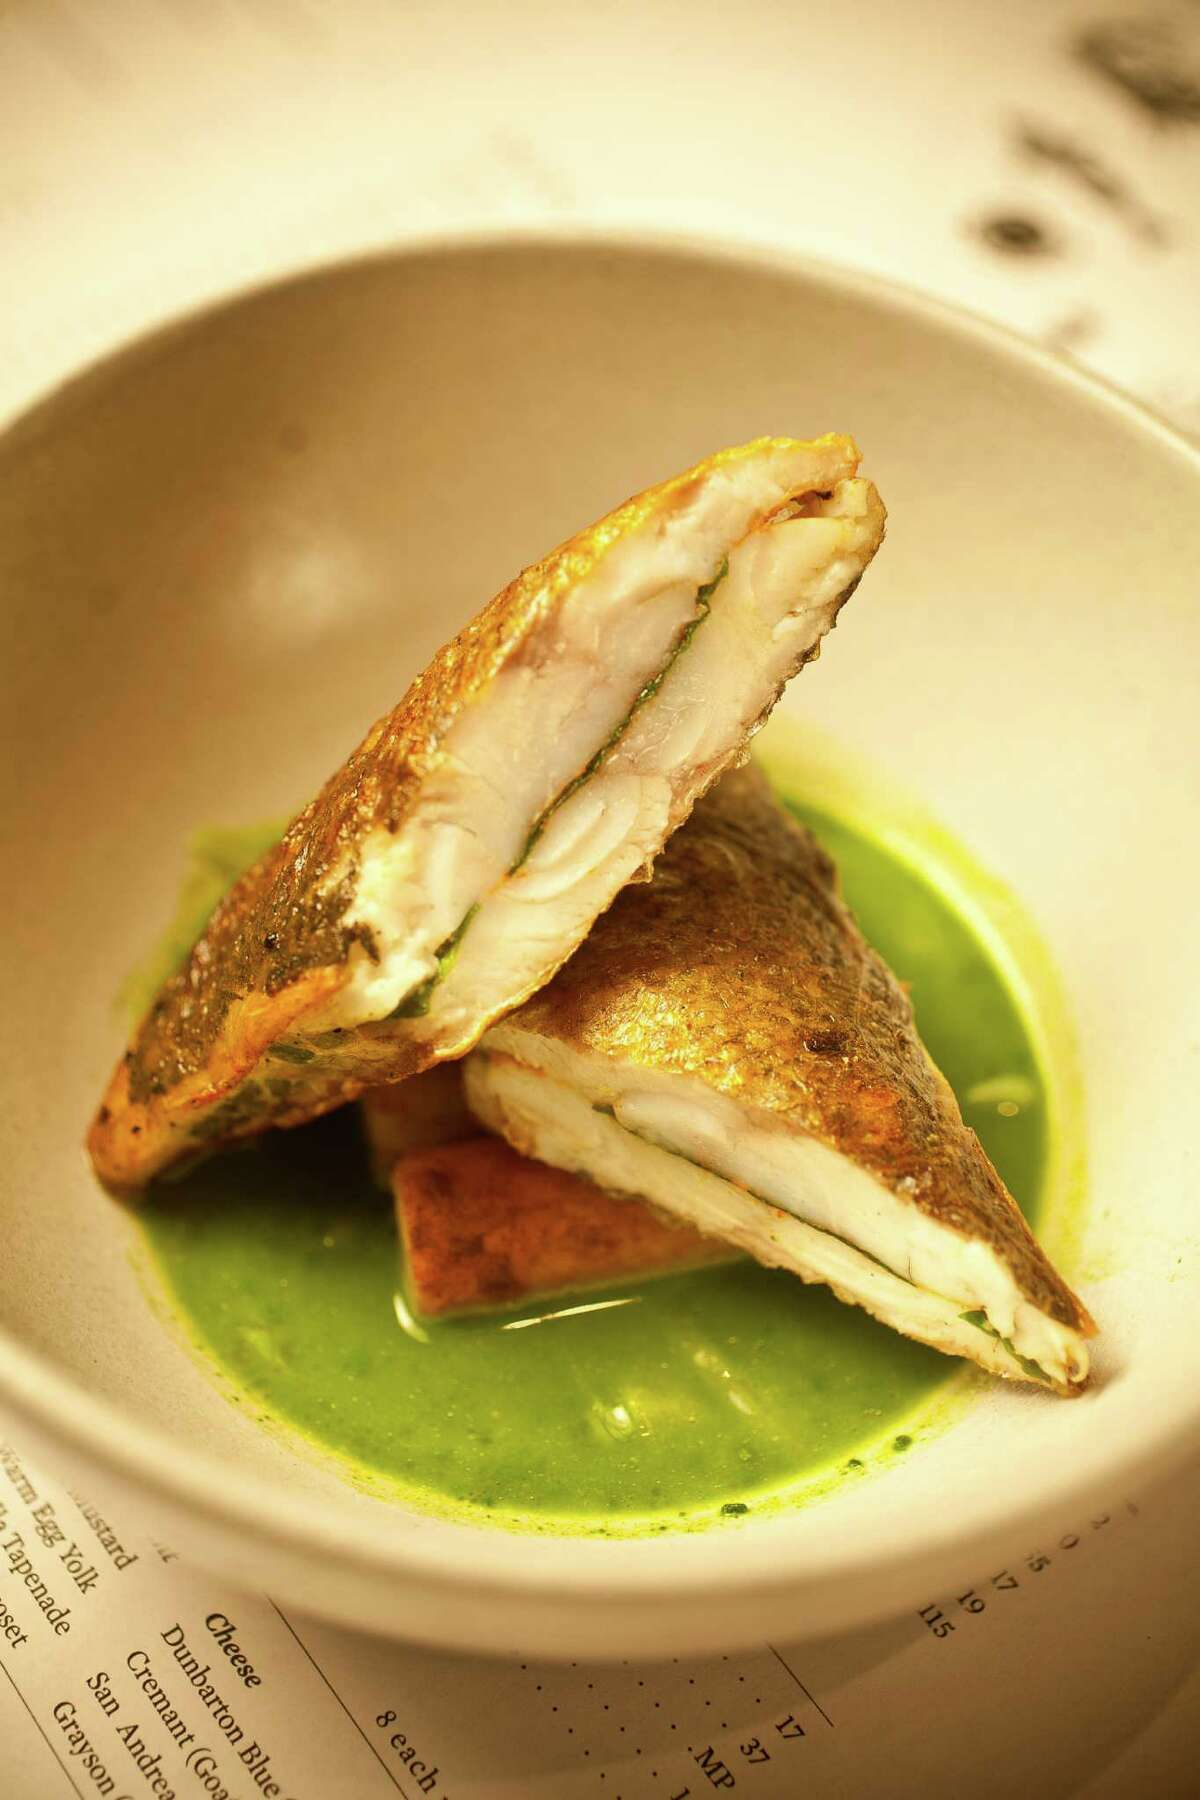 The Pass & Provisions' branzino fillets sandwiching lovage on a mussel/parsley/ginger soup with marrow browned potatoes, Tuesday, Sept. 11, 2012, in Houston. ( Nick de la Torre / Houston Chronicle )